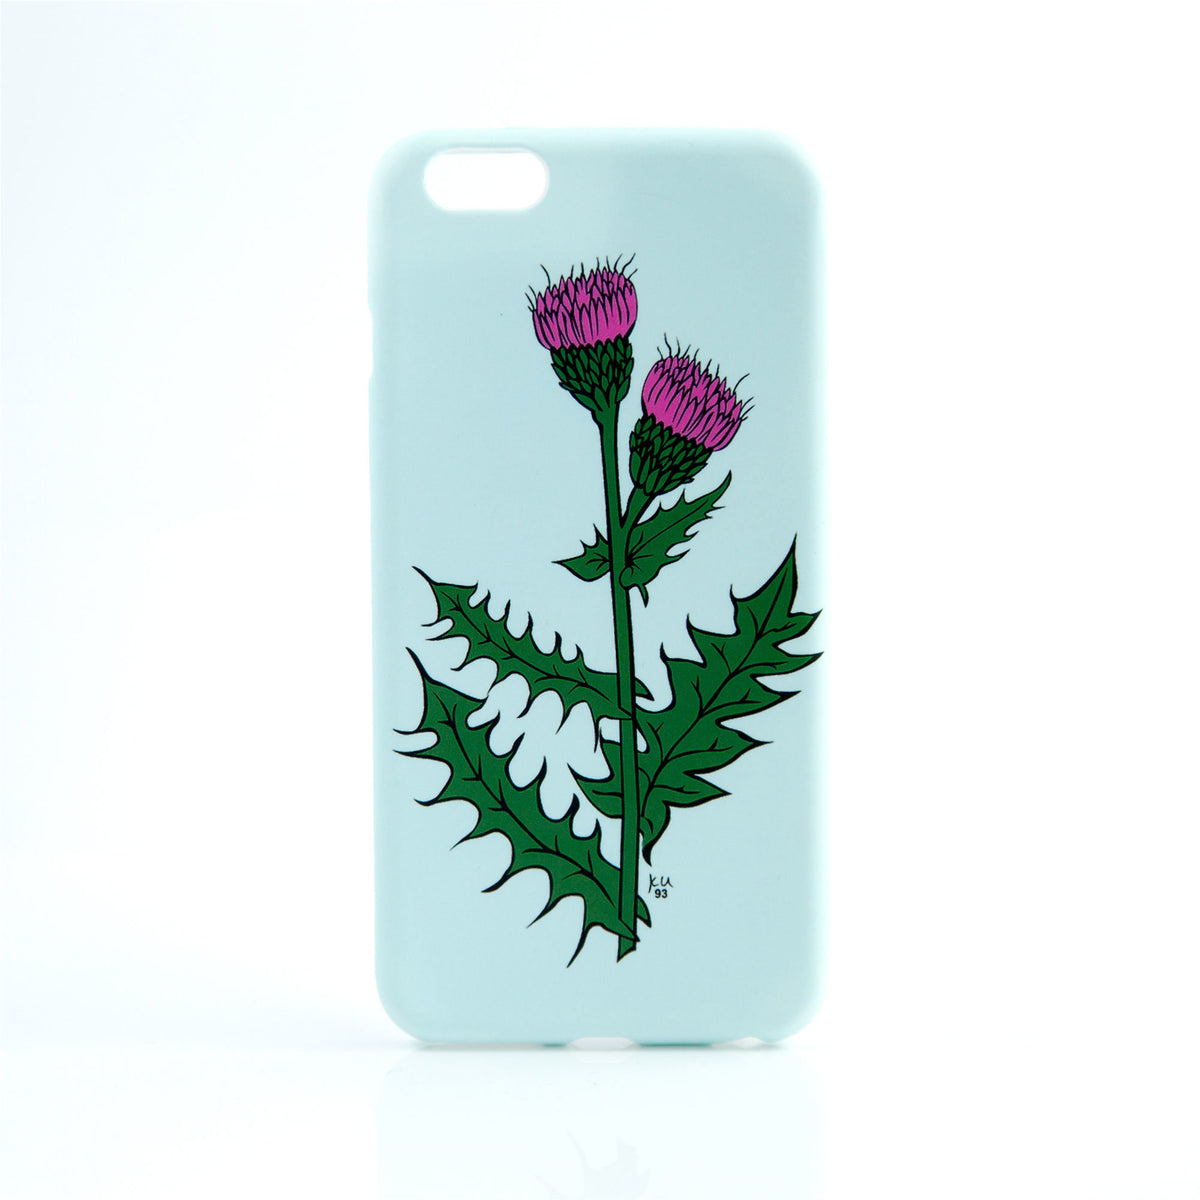 scottish thistle cell phone cases tartancovers com u2013 tartan covers